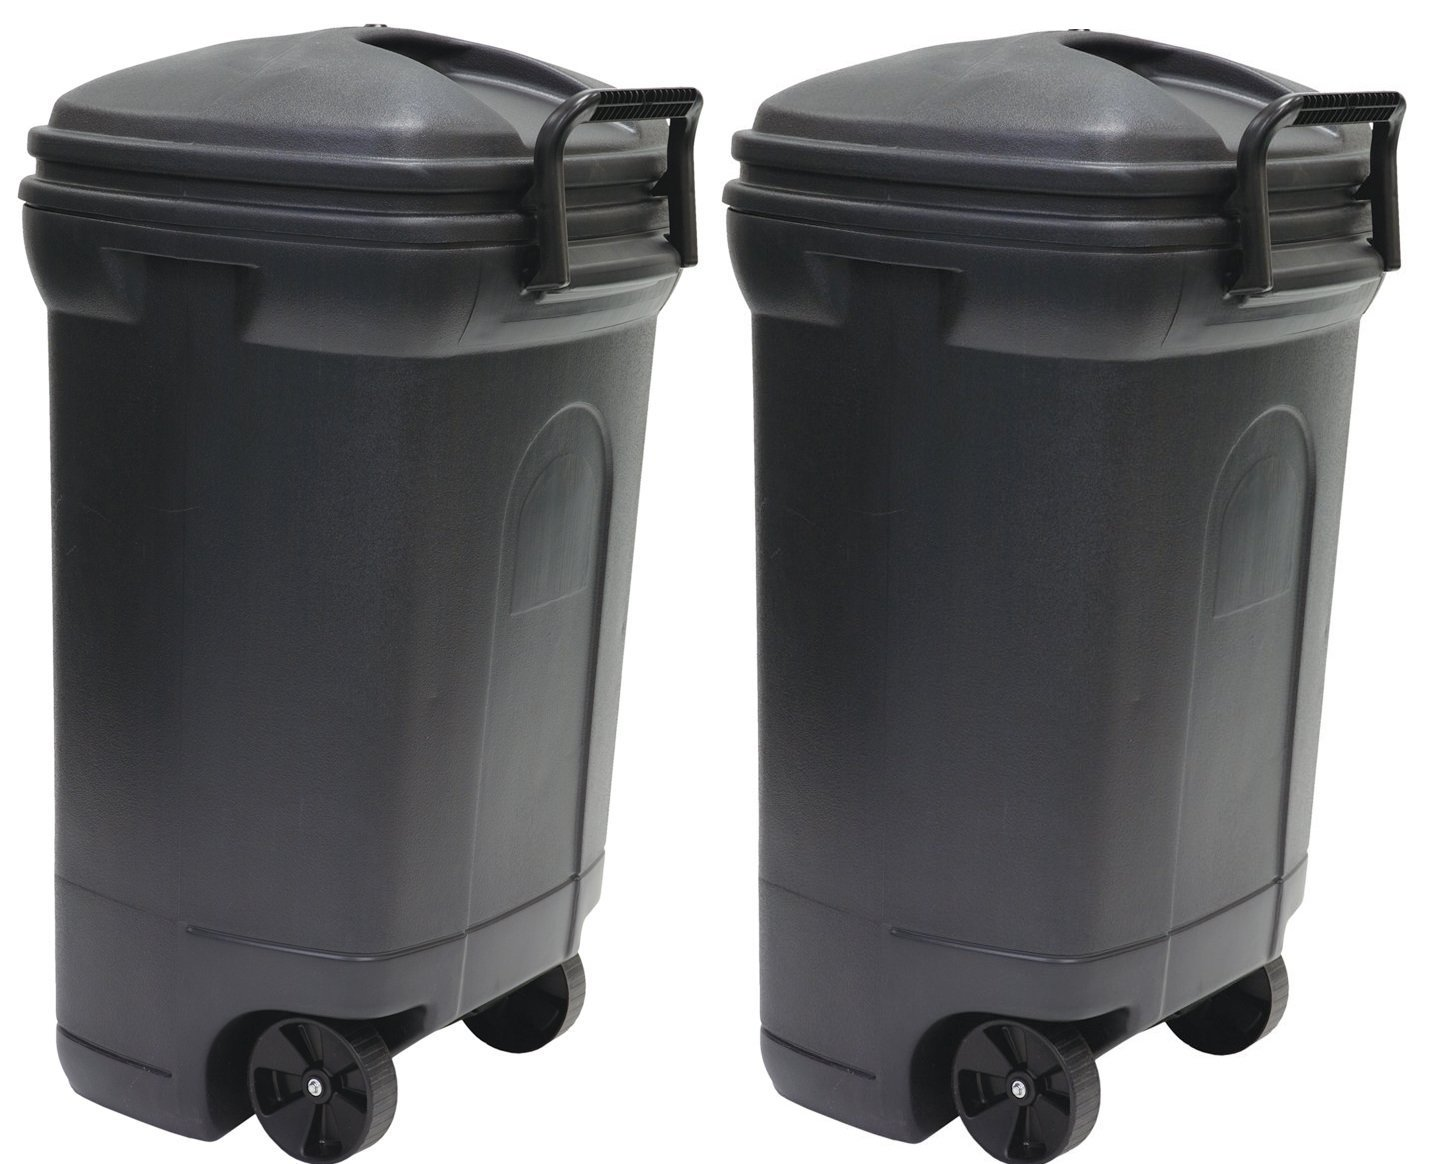 United Solutions TB0010 Rough and Rugged Rectangular 34 Gallon Wheeled Black Outdoor Trash Can with Hook&Lock Handle-Thirty Four Gallon Garbage Can with Locking Handles (2 Pack) by United Solutions